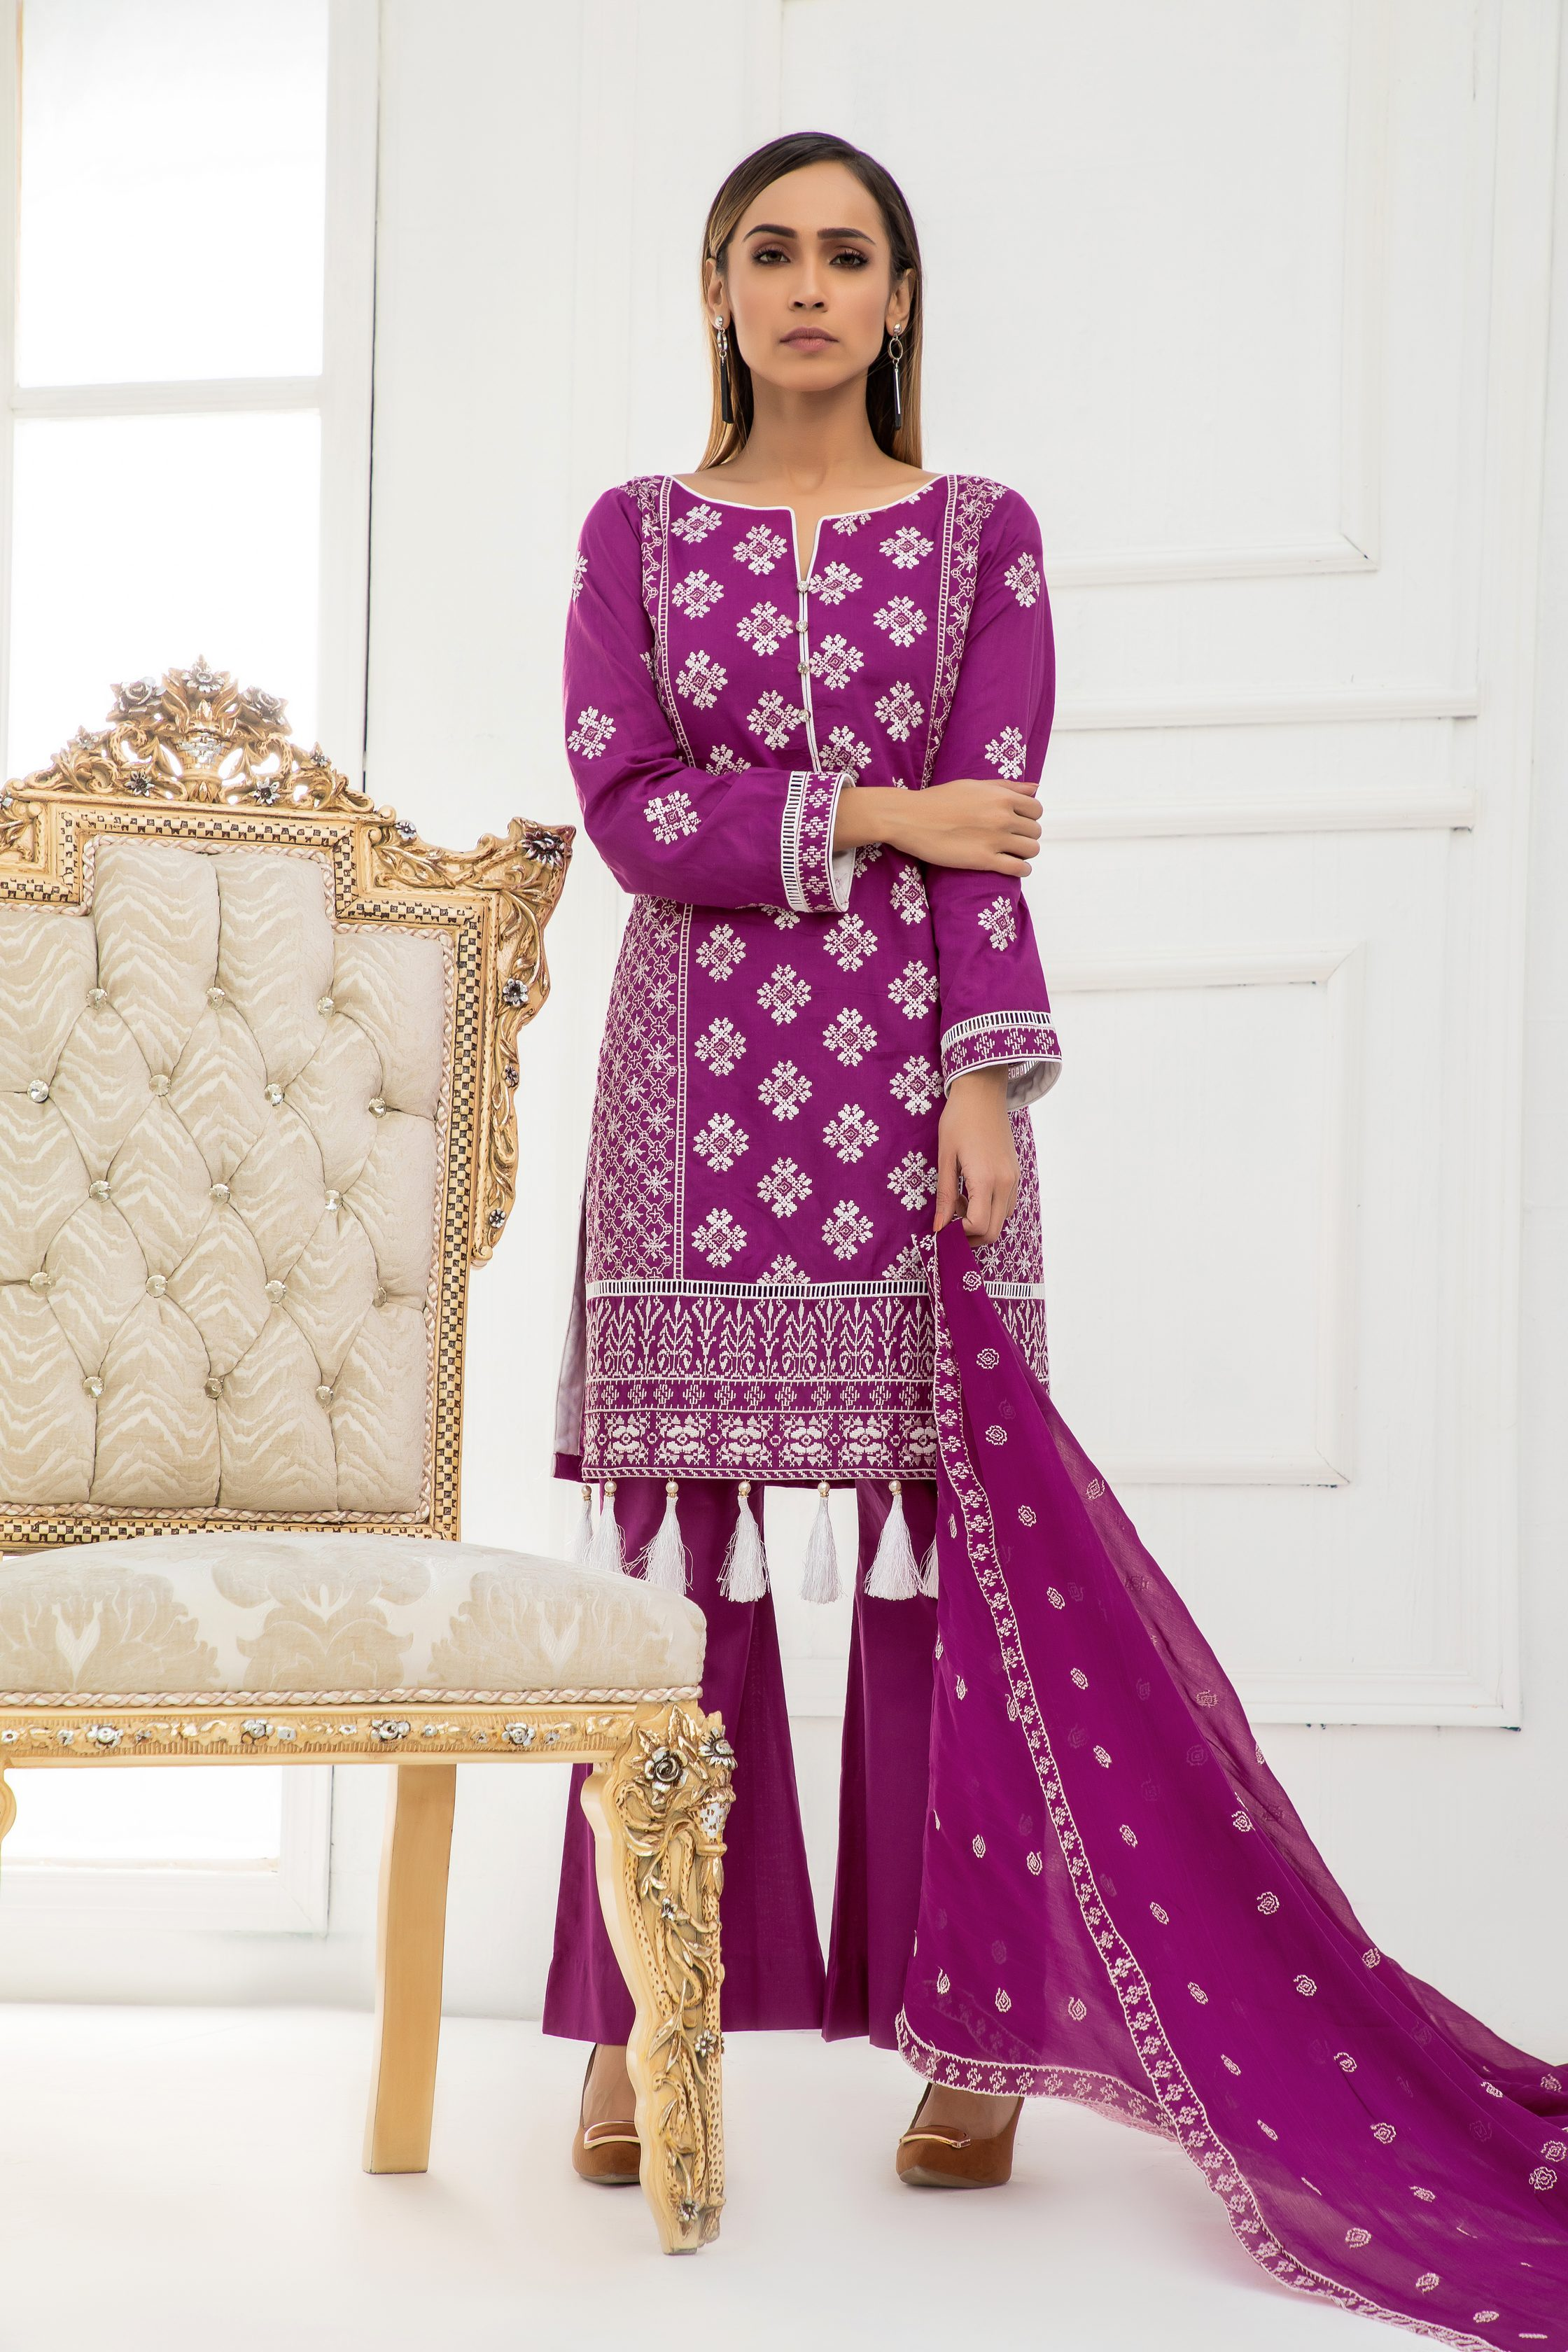 Kalyan Designer Embroidered Vol 2